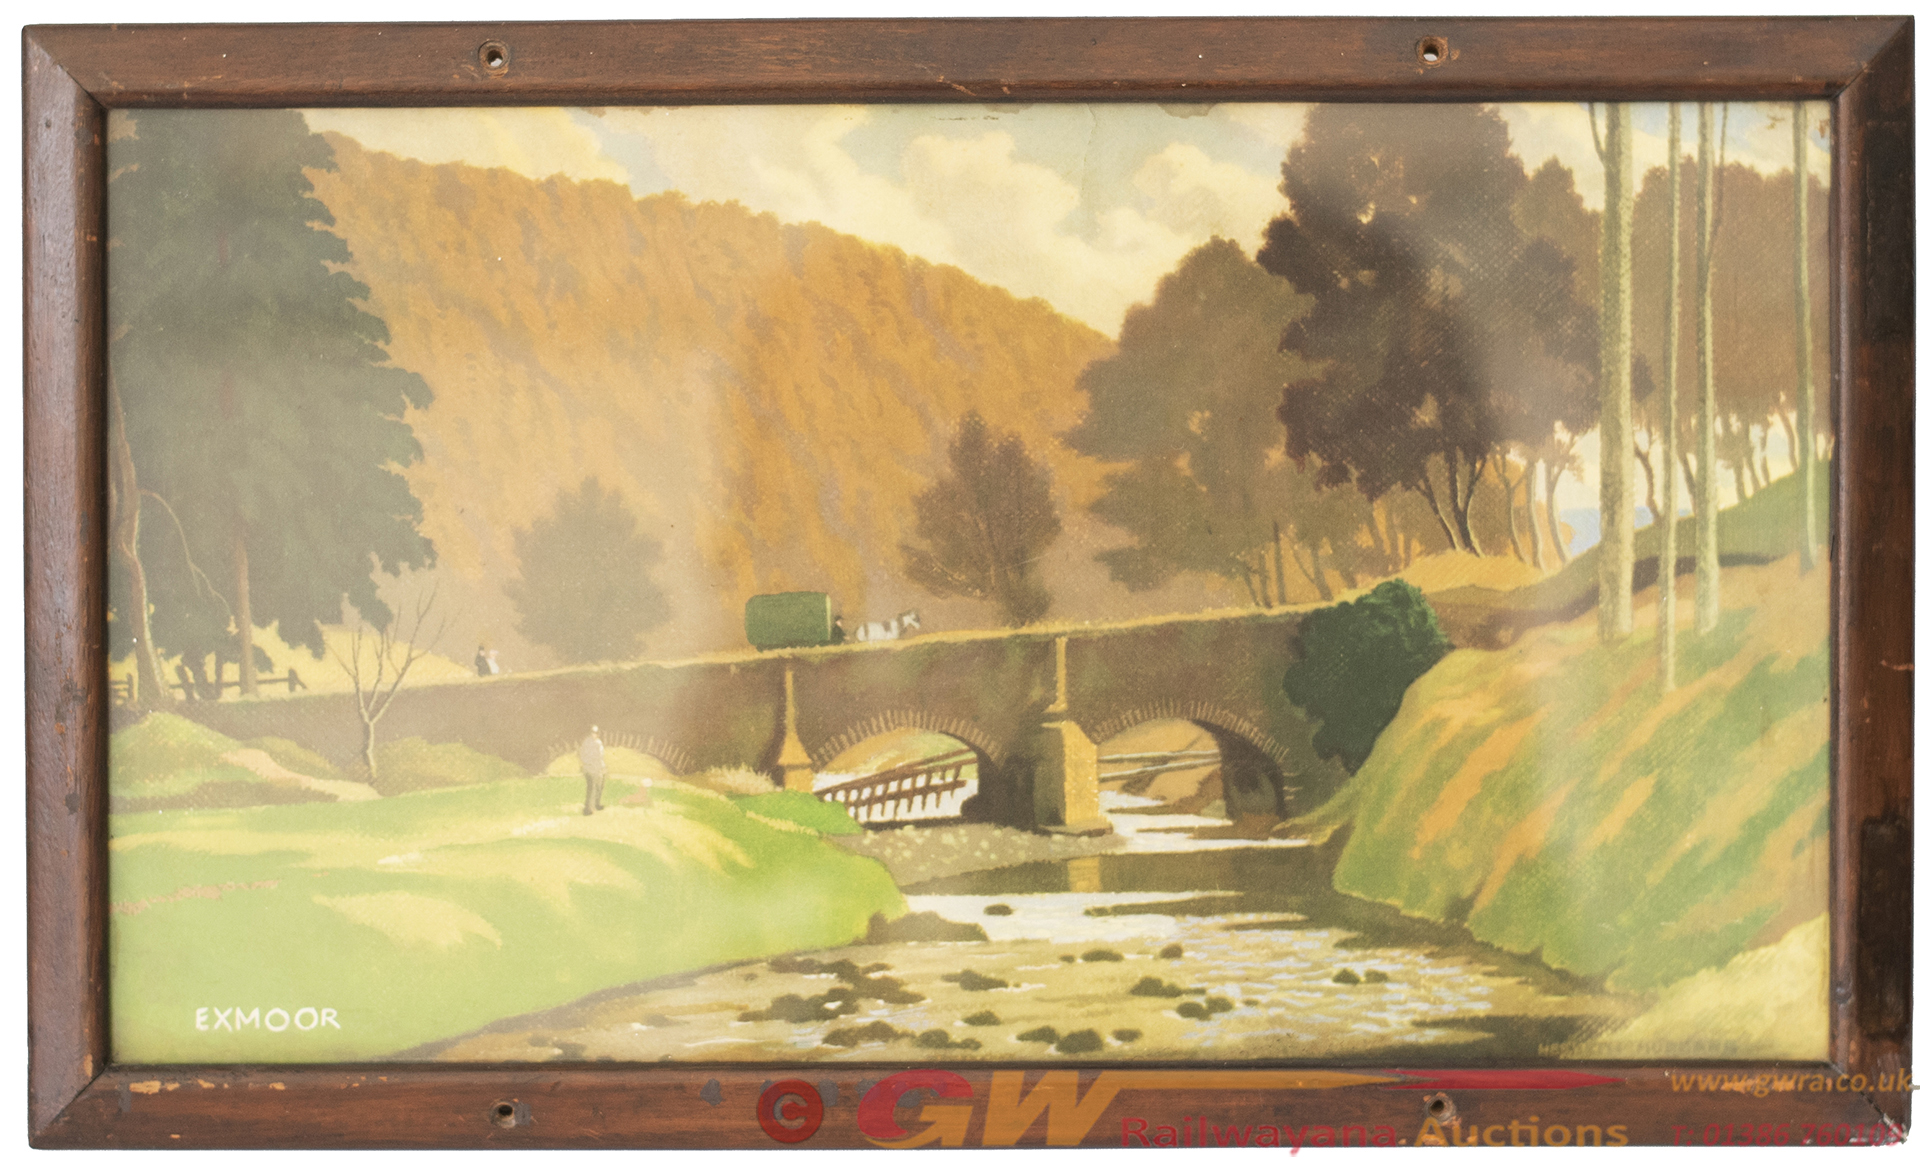 Carriage Print EXMOOR By Hesketh Hubbard From The